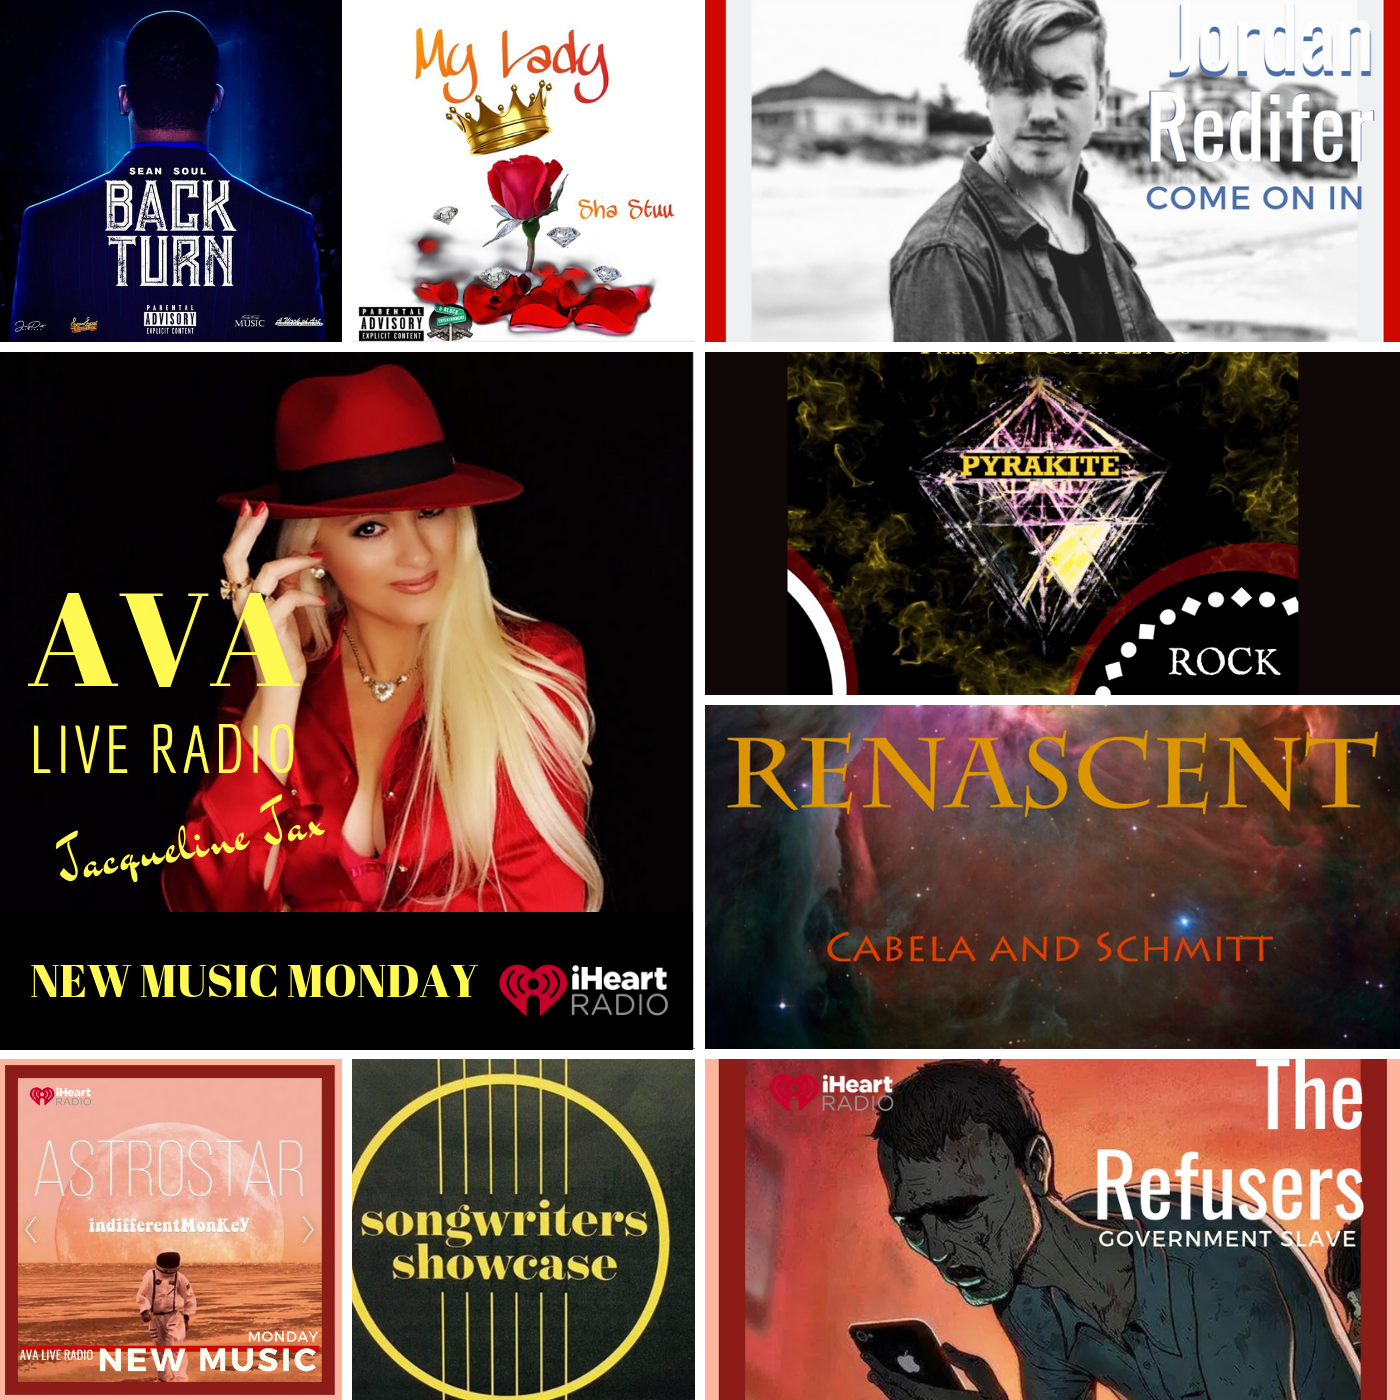 6.17 New Music Monday with Jacqueline Jax on AVA Live Radio Mixed Genre Playlist.png